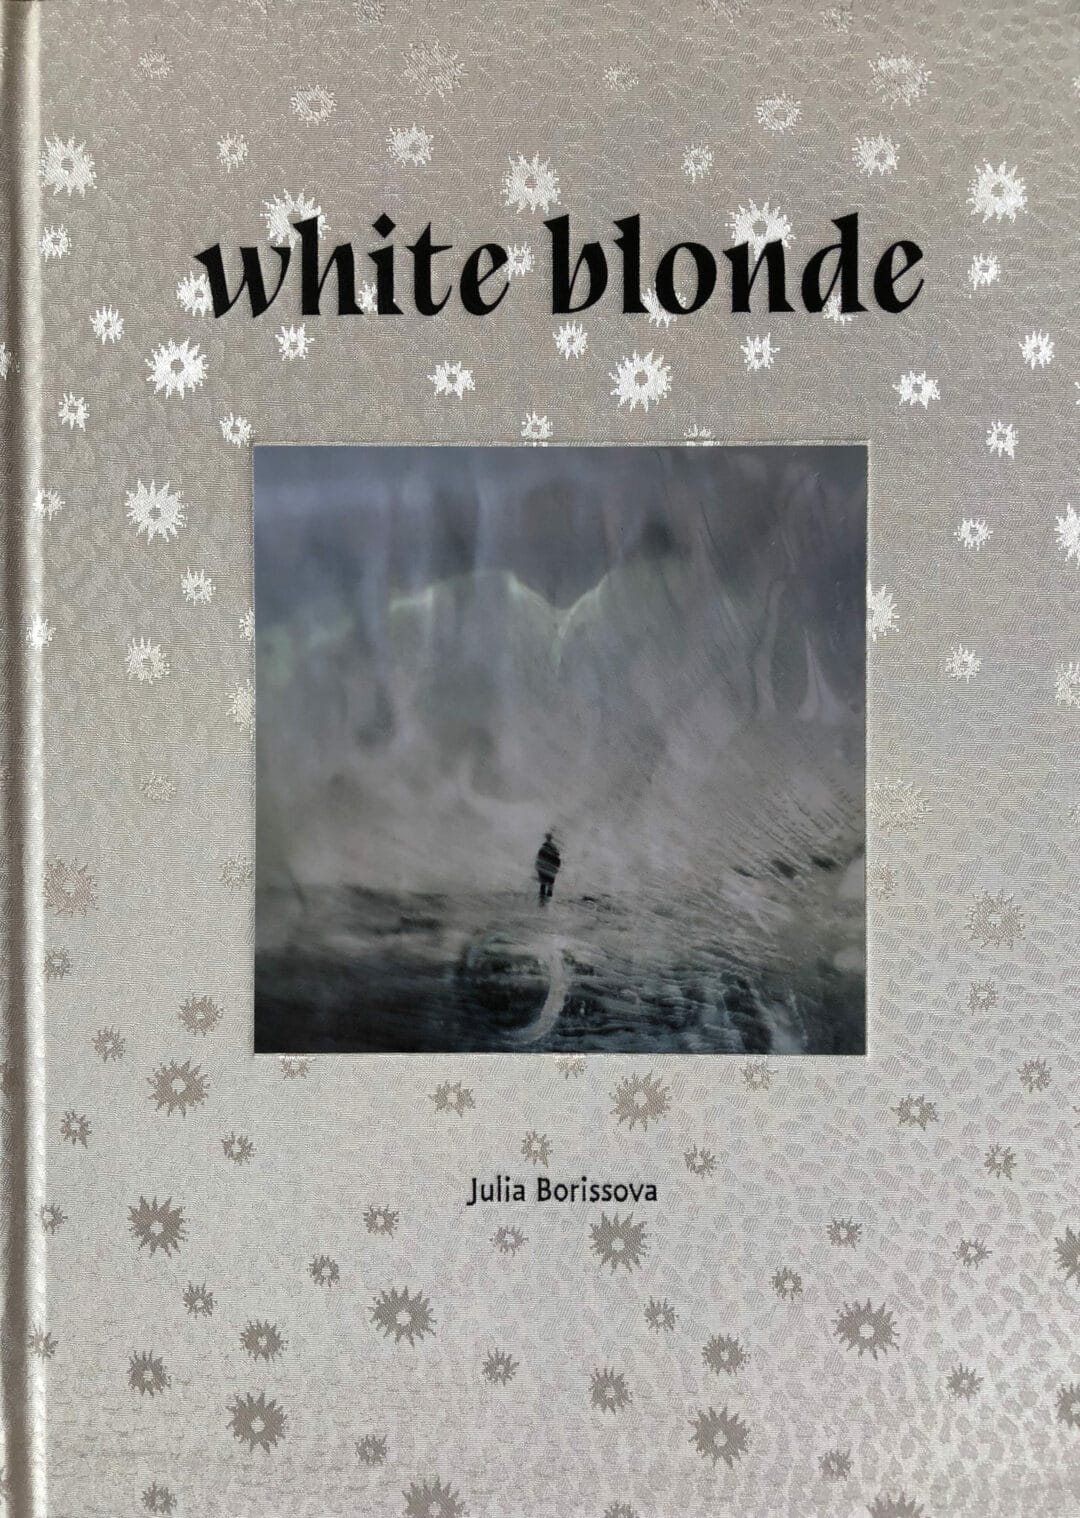 « White Blonde » BeSpoke Collection, N°10 by the Russian artist Julia Borissova, (Limited Edition 250 Copies + signed C print) Editions Bessard